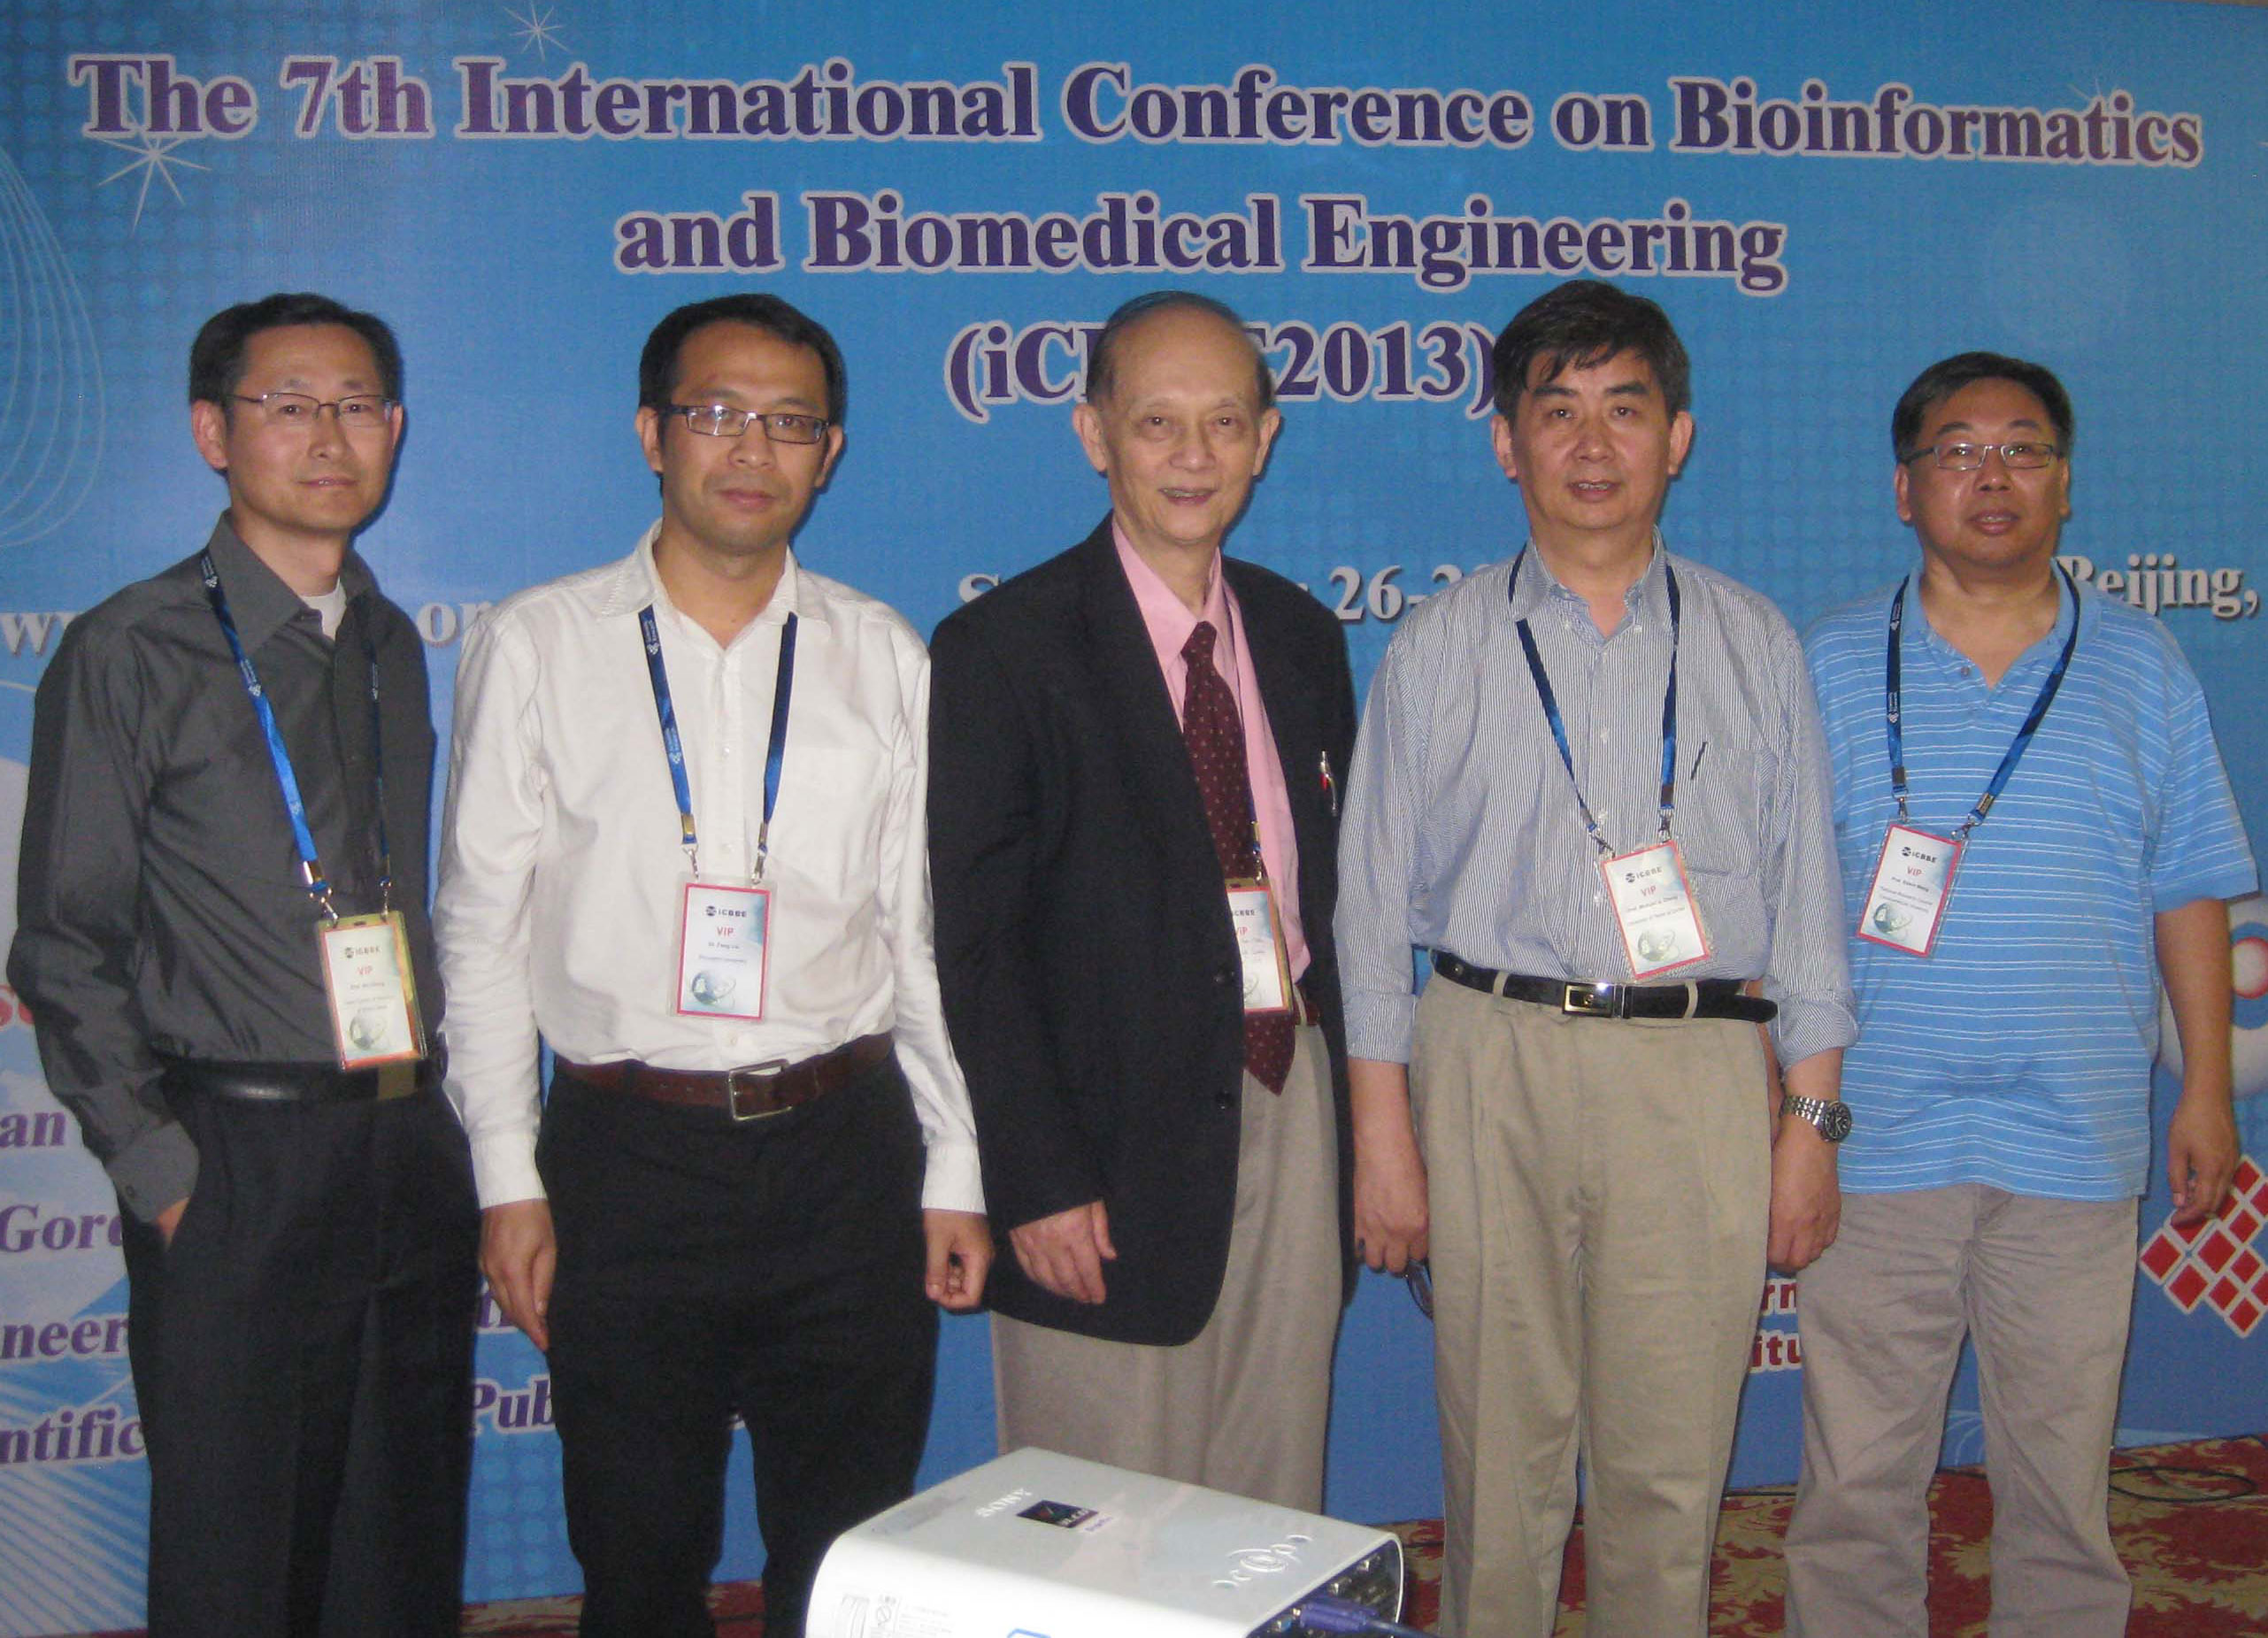 Plenary Speakers and Prof. Chou